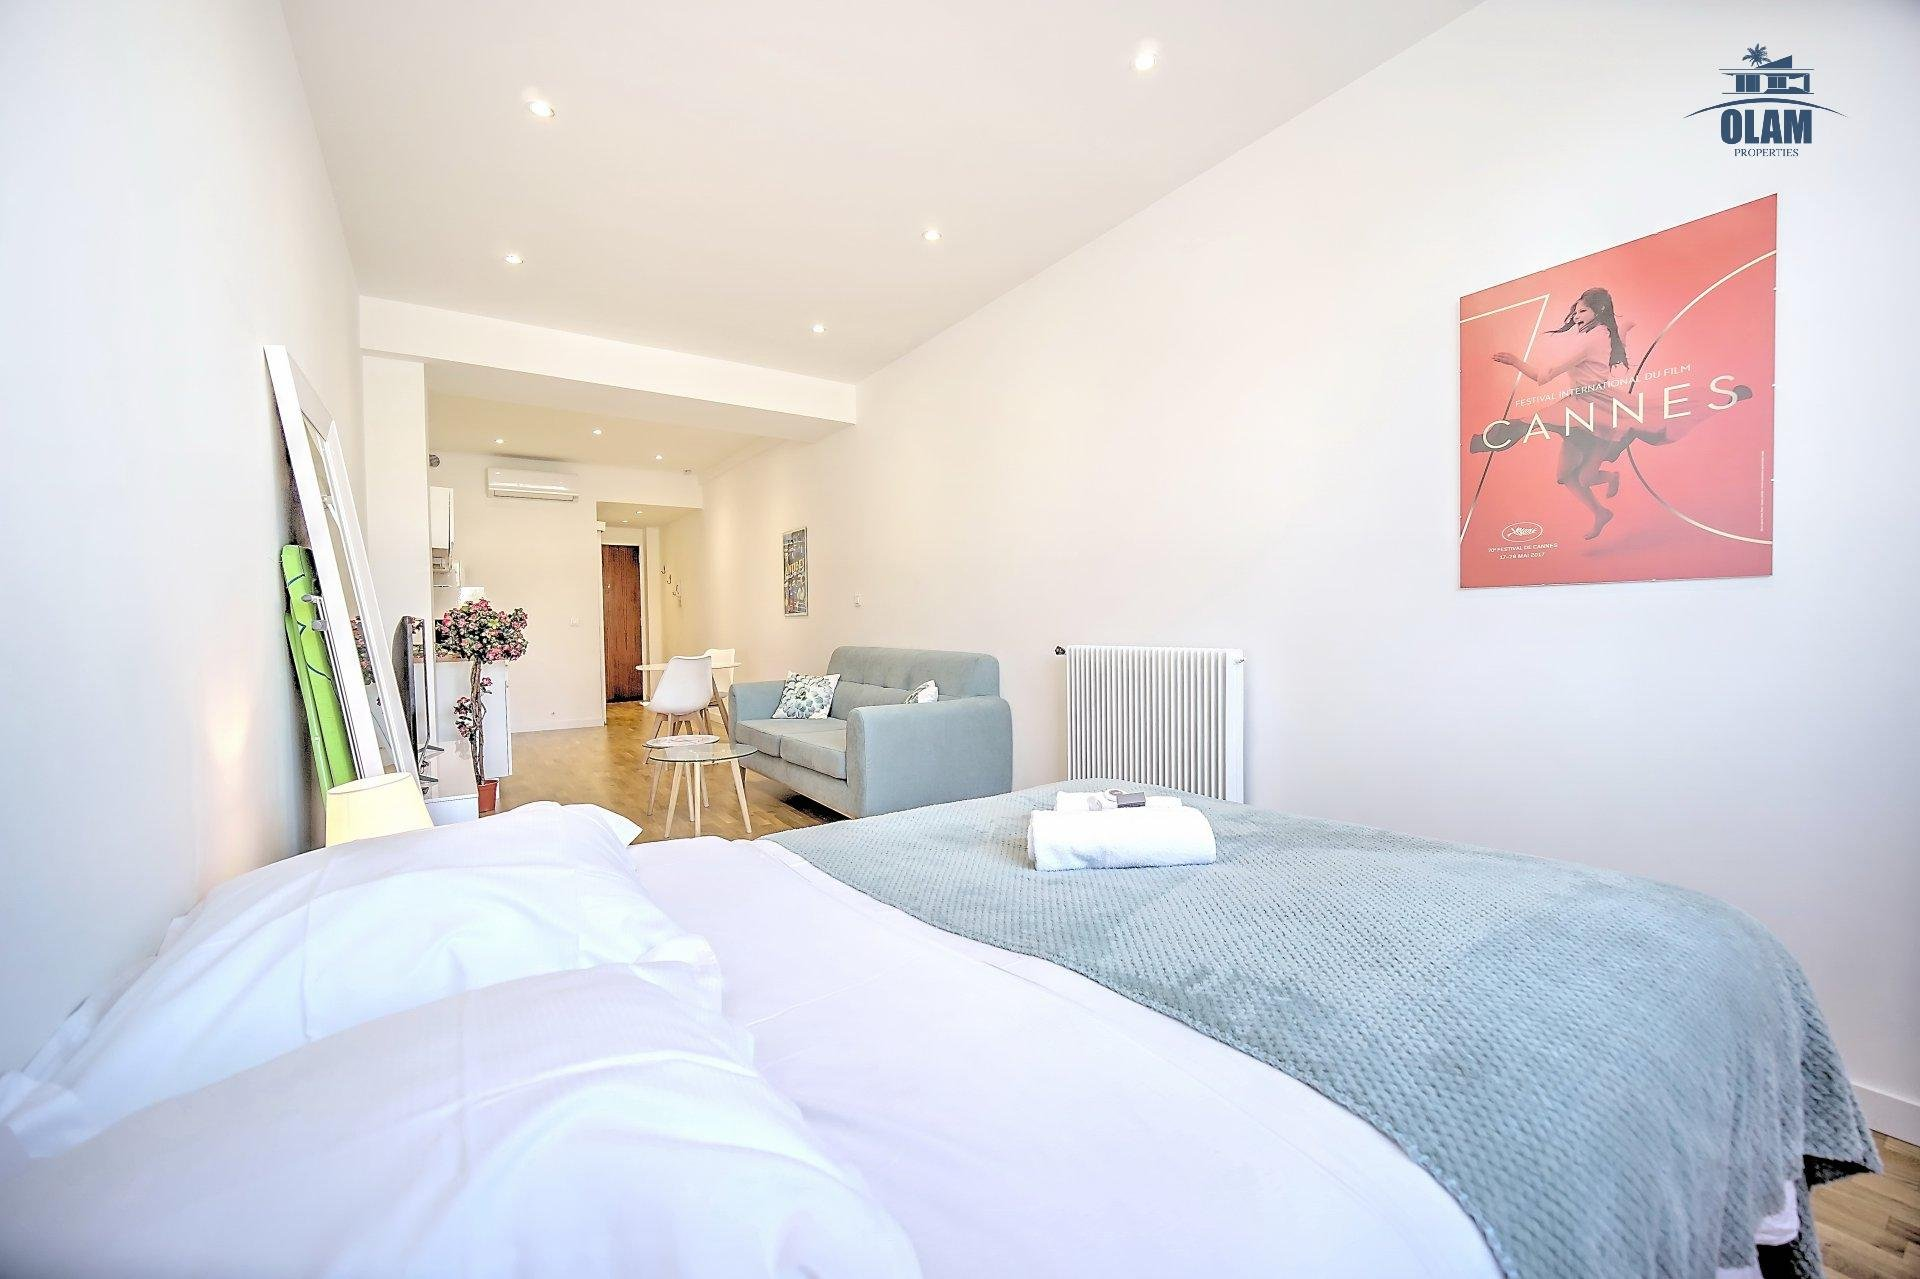 SEASONAL RENTING CENTER OF CANNES STUDIO APPARTMENT